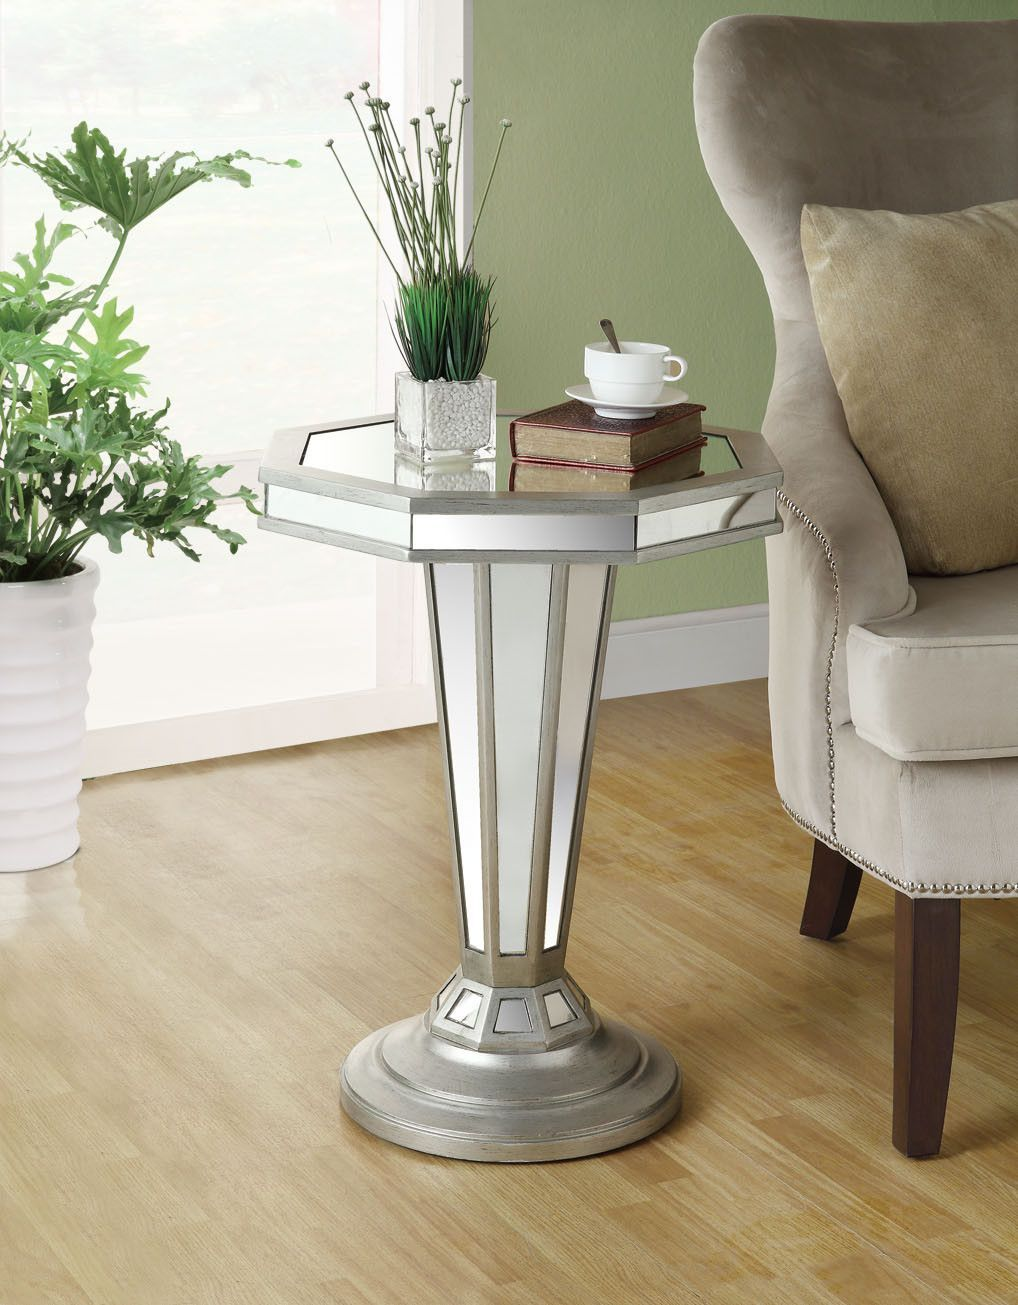 monarch specialties octagon shape pedestal accent table inch mirrored coffee bases for granite tops affordable lamps dining set accents bourse michelin small crystal beachy chairs